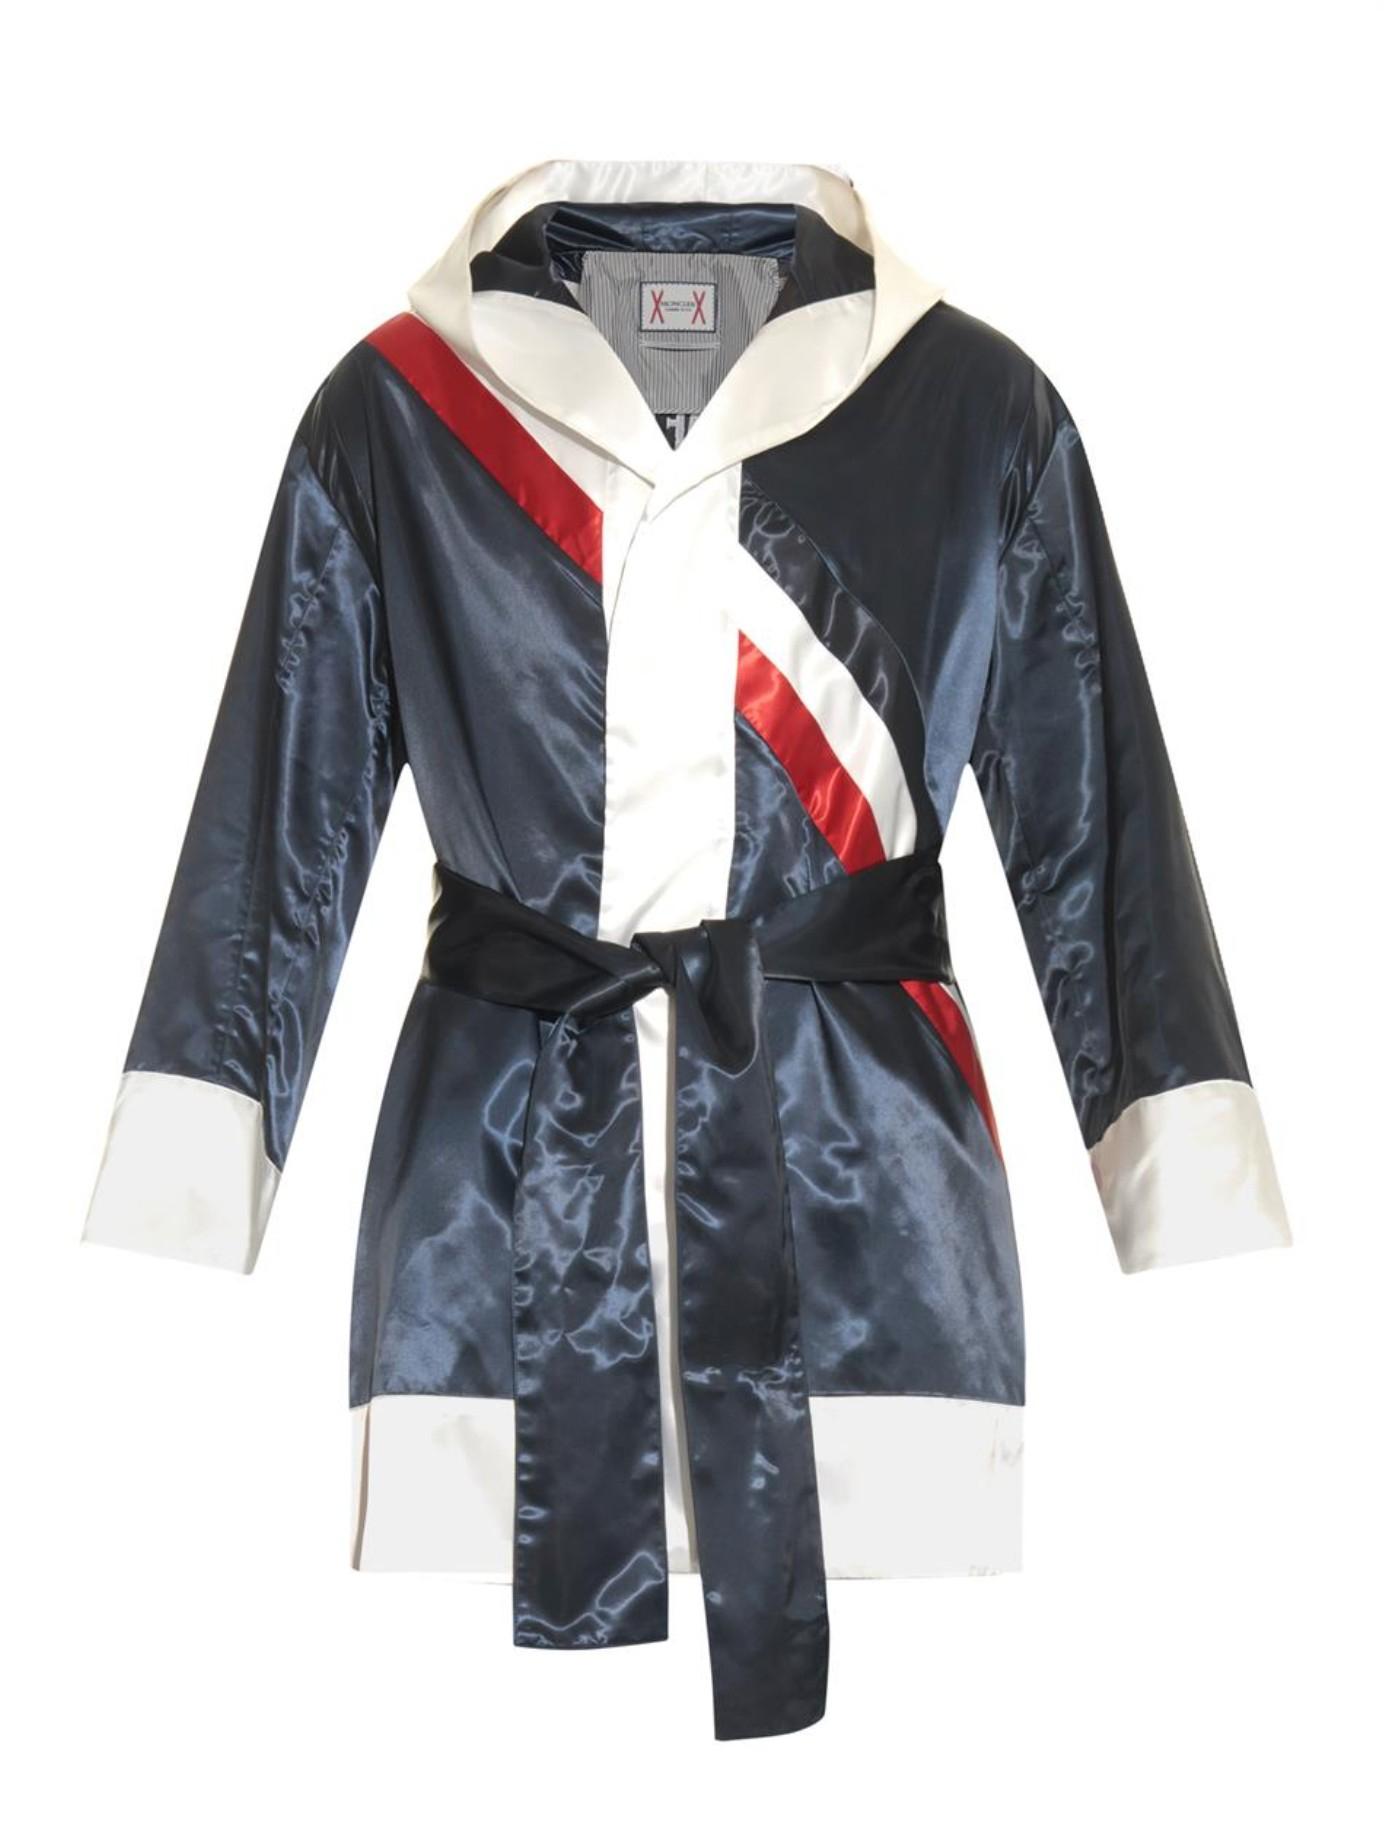 Lyst - Moncler Gamme Bleu Colour-block Dressing Gown in Blue for Men